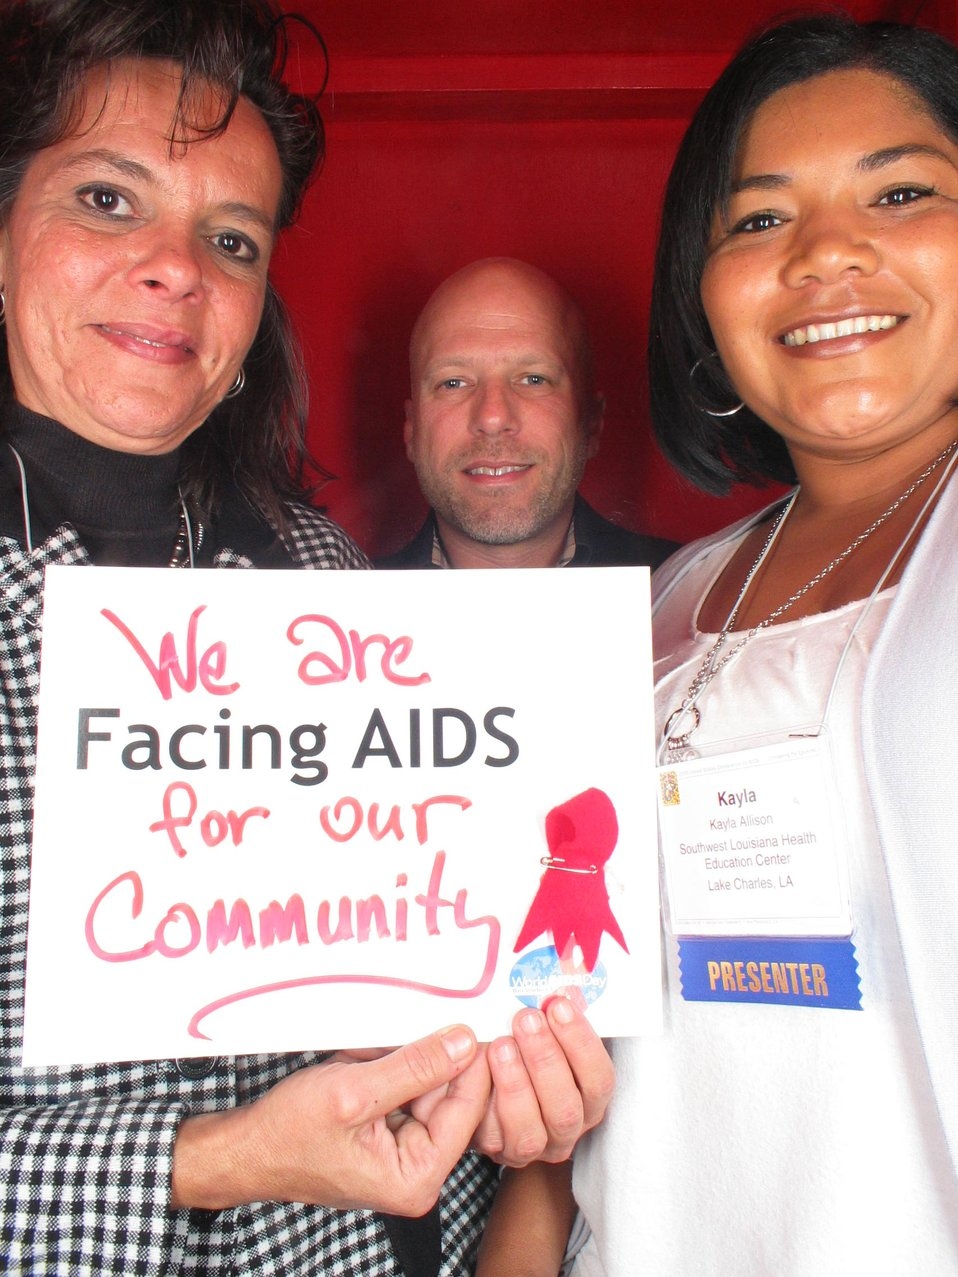 We are Facing AIDS for our community